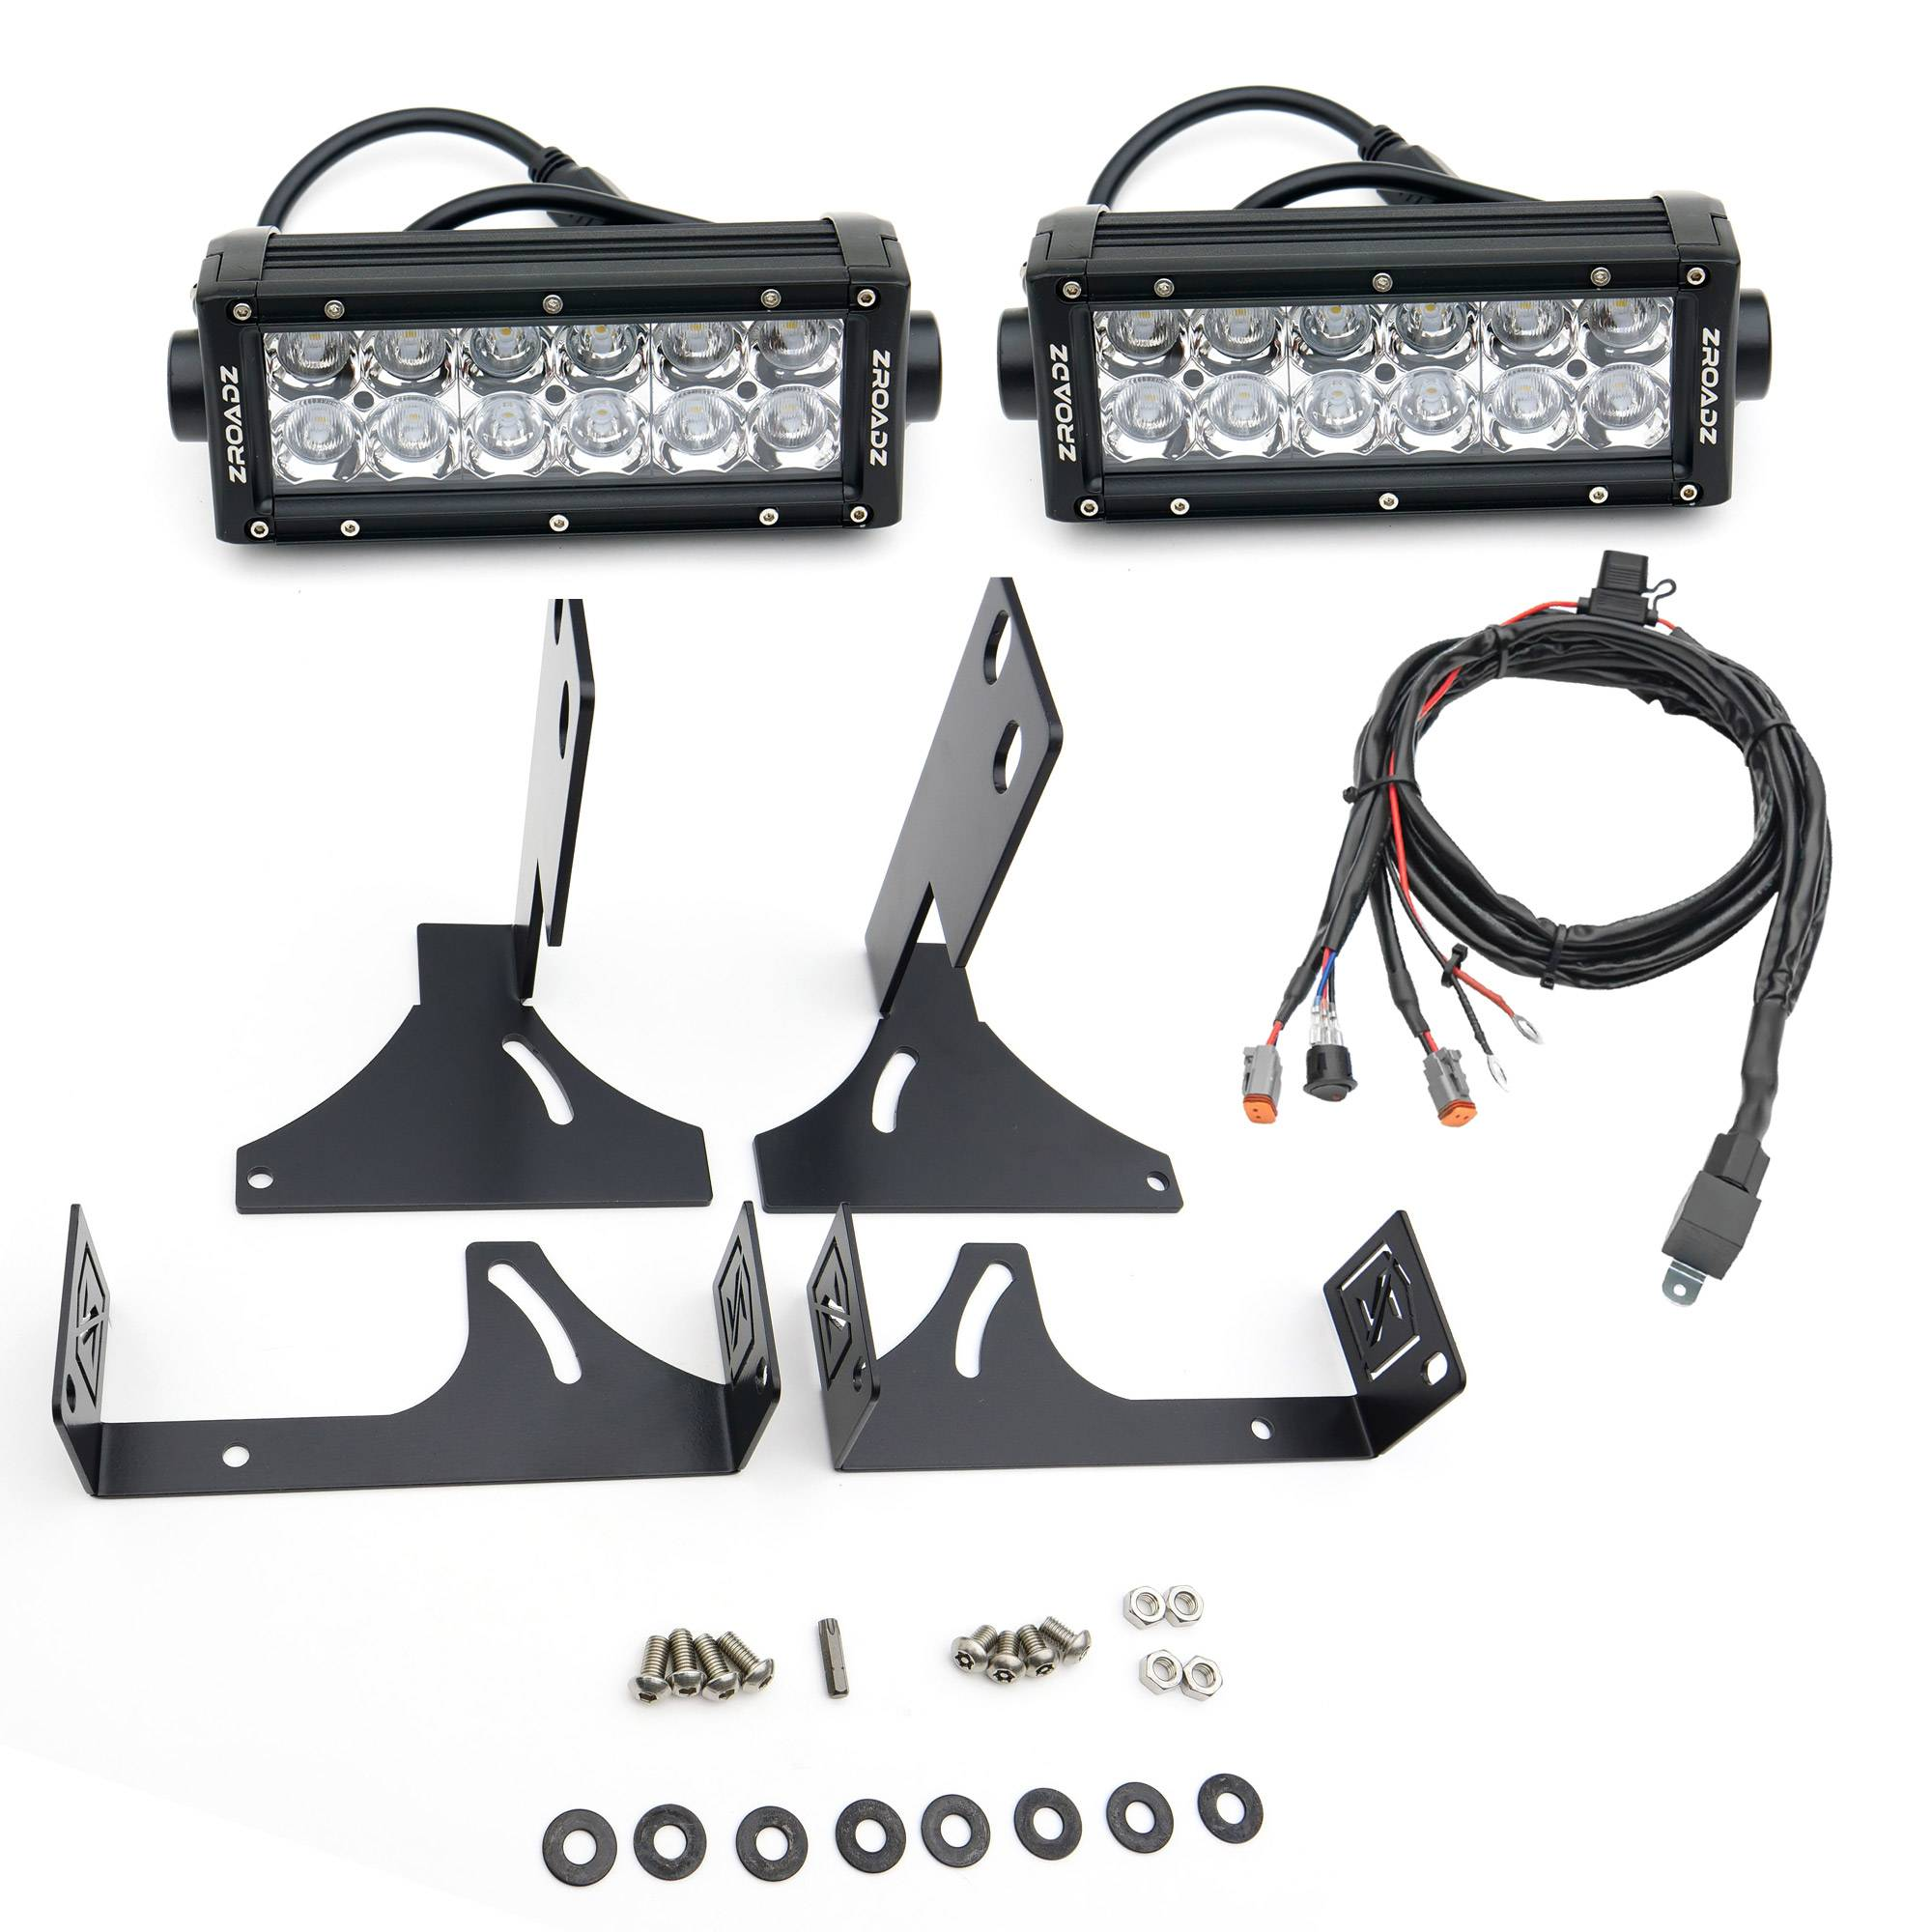 ZROADZ OFF ROAD PRODUCTS - 2008-2016 Ford Super Duty Rear Bumper LED Kit with (2) 6 Inch LED Straight Double Row Light Bars - PN #Z385461-KIT